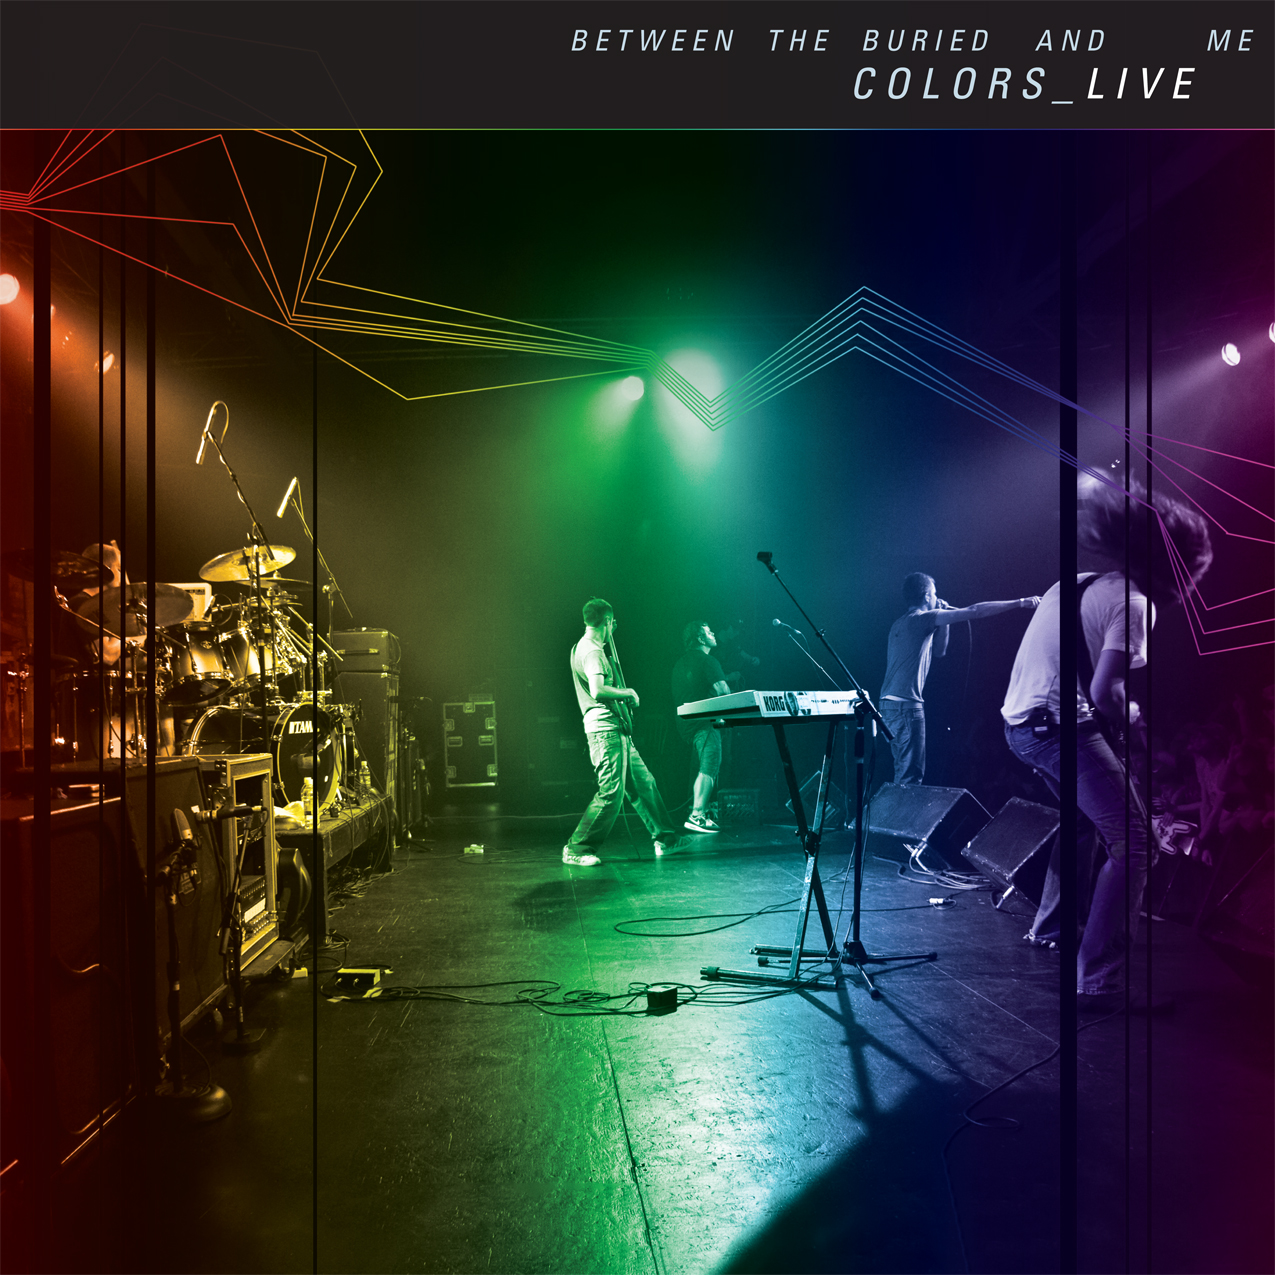 Between The Buried And Me - Colors_Live